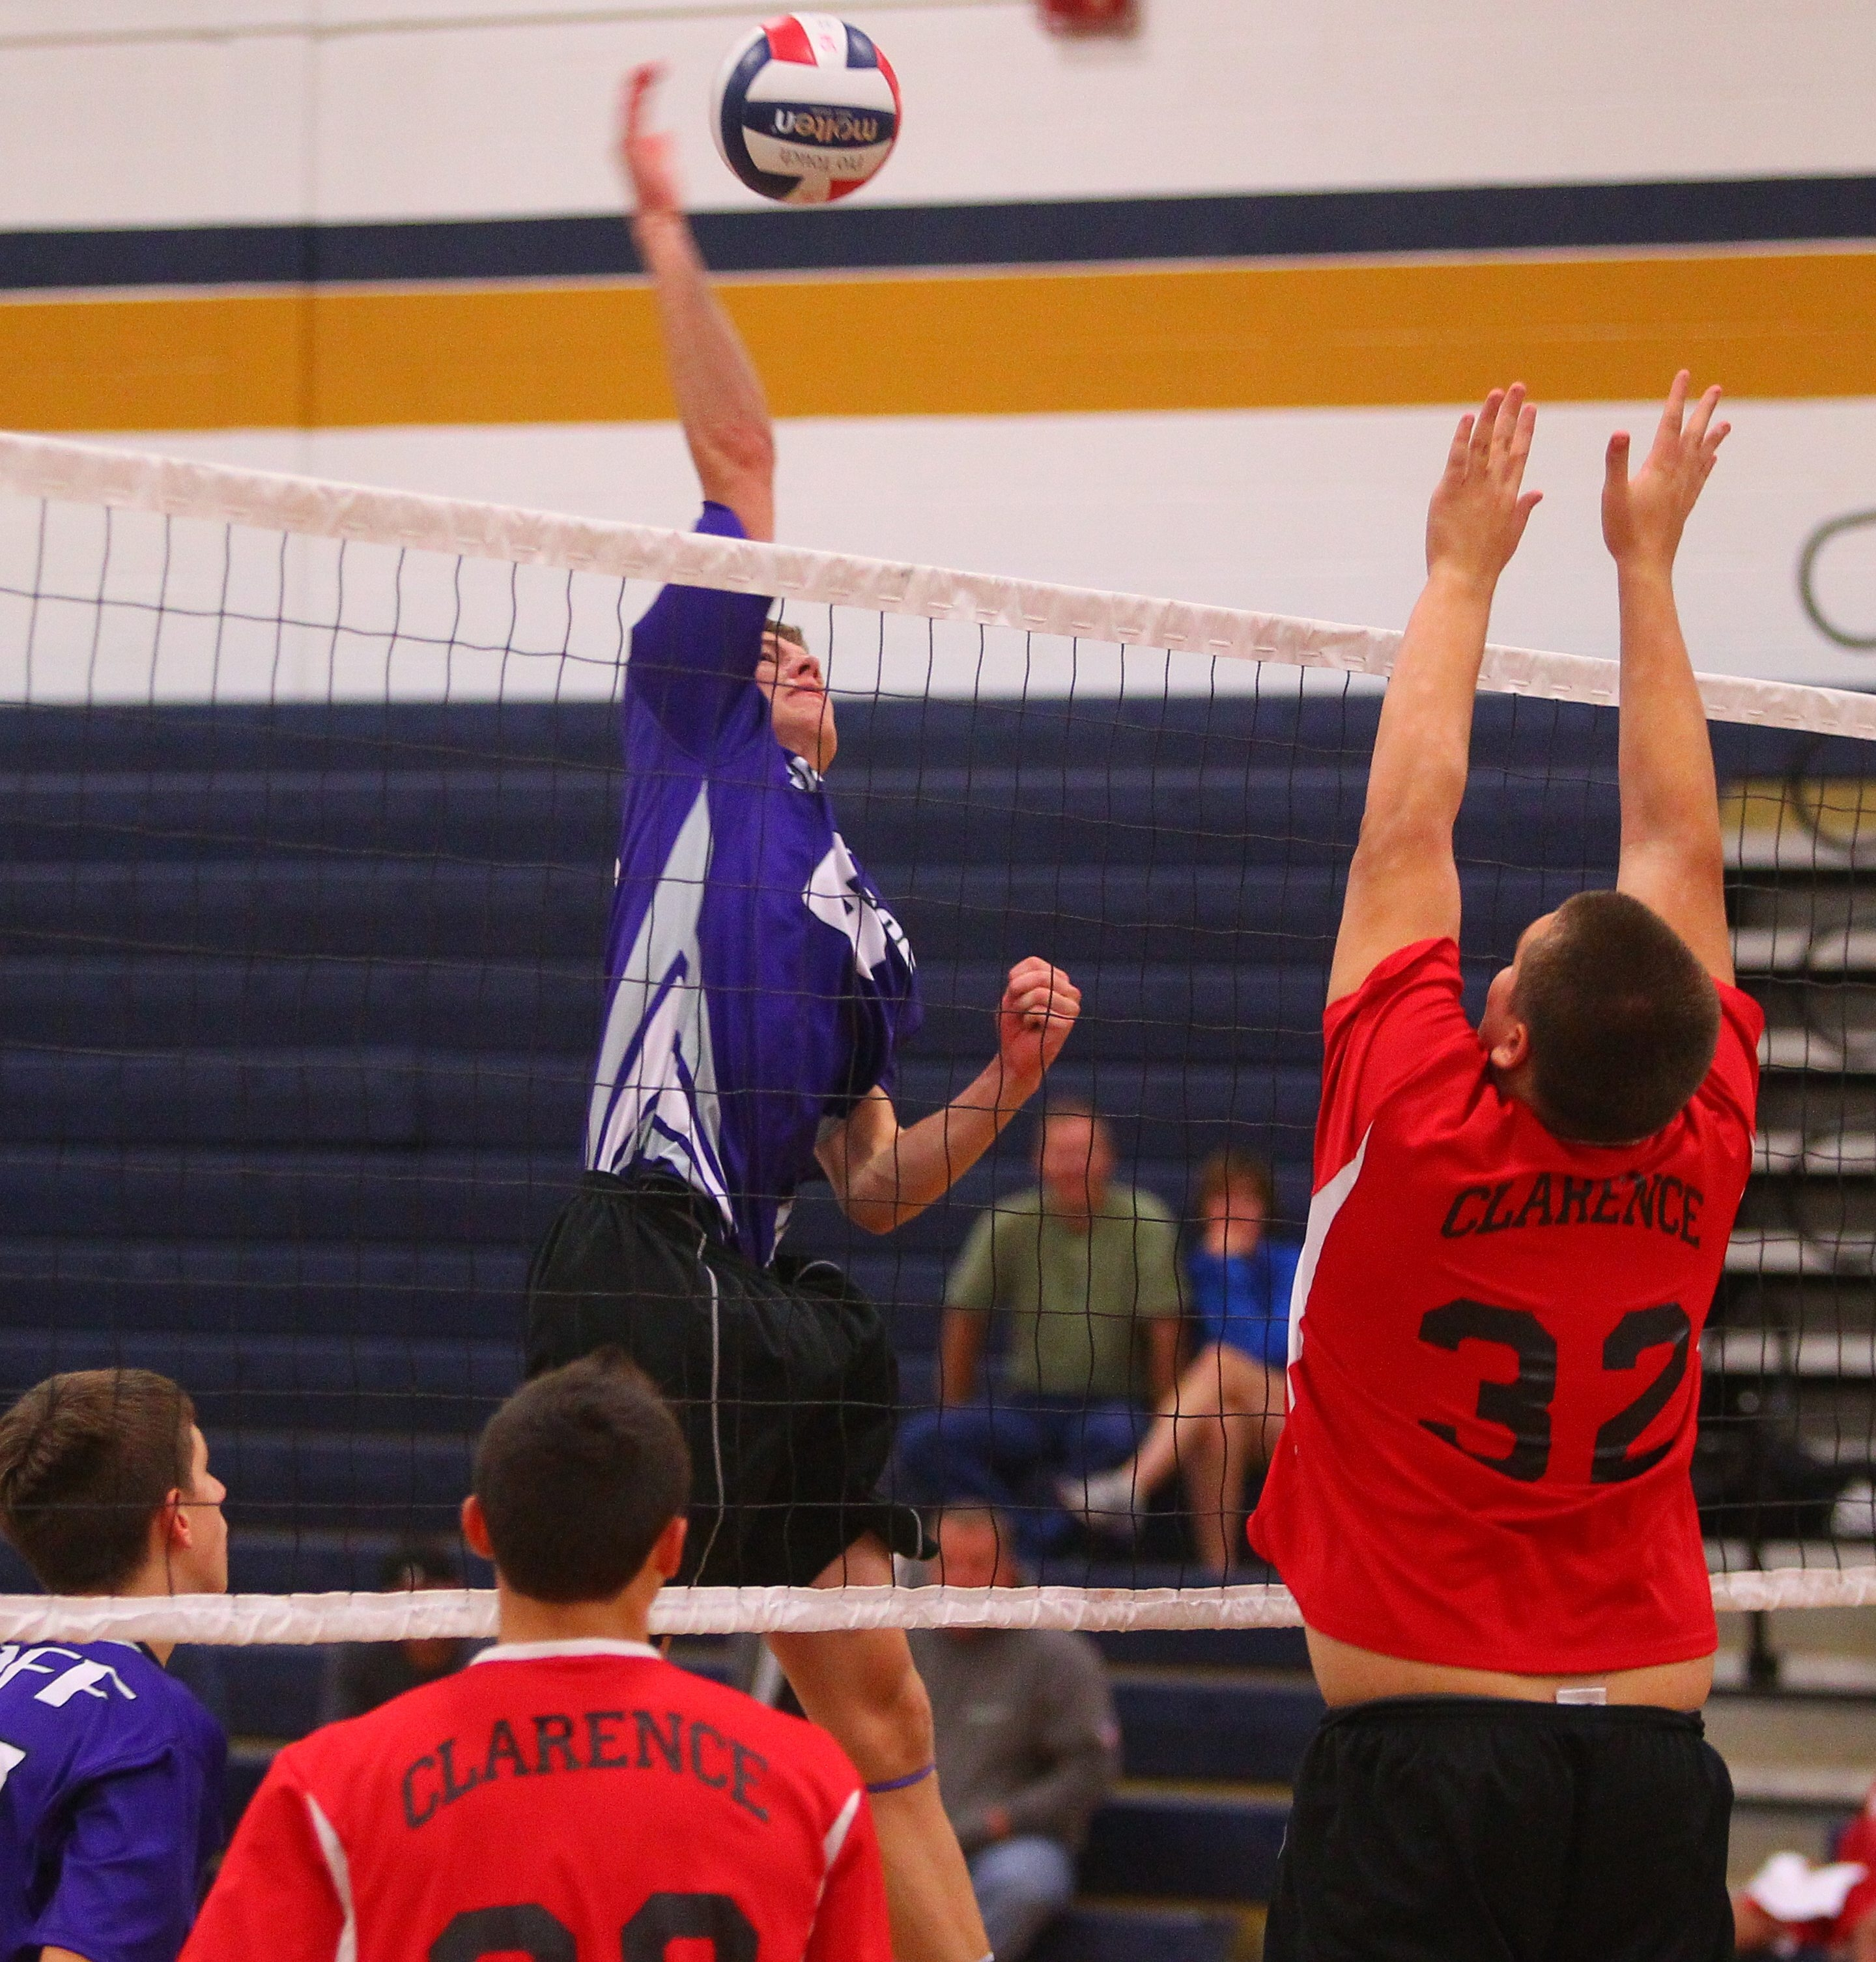 Hamburg senior Patrick Stroh (left) was named MVP at Saturday's Sweet Home Volleyball Tournament as the Bulldogs beat Clarence in the final.